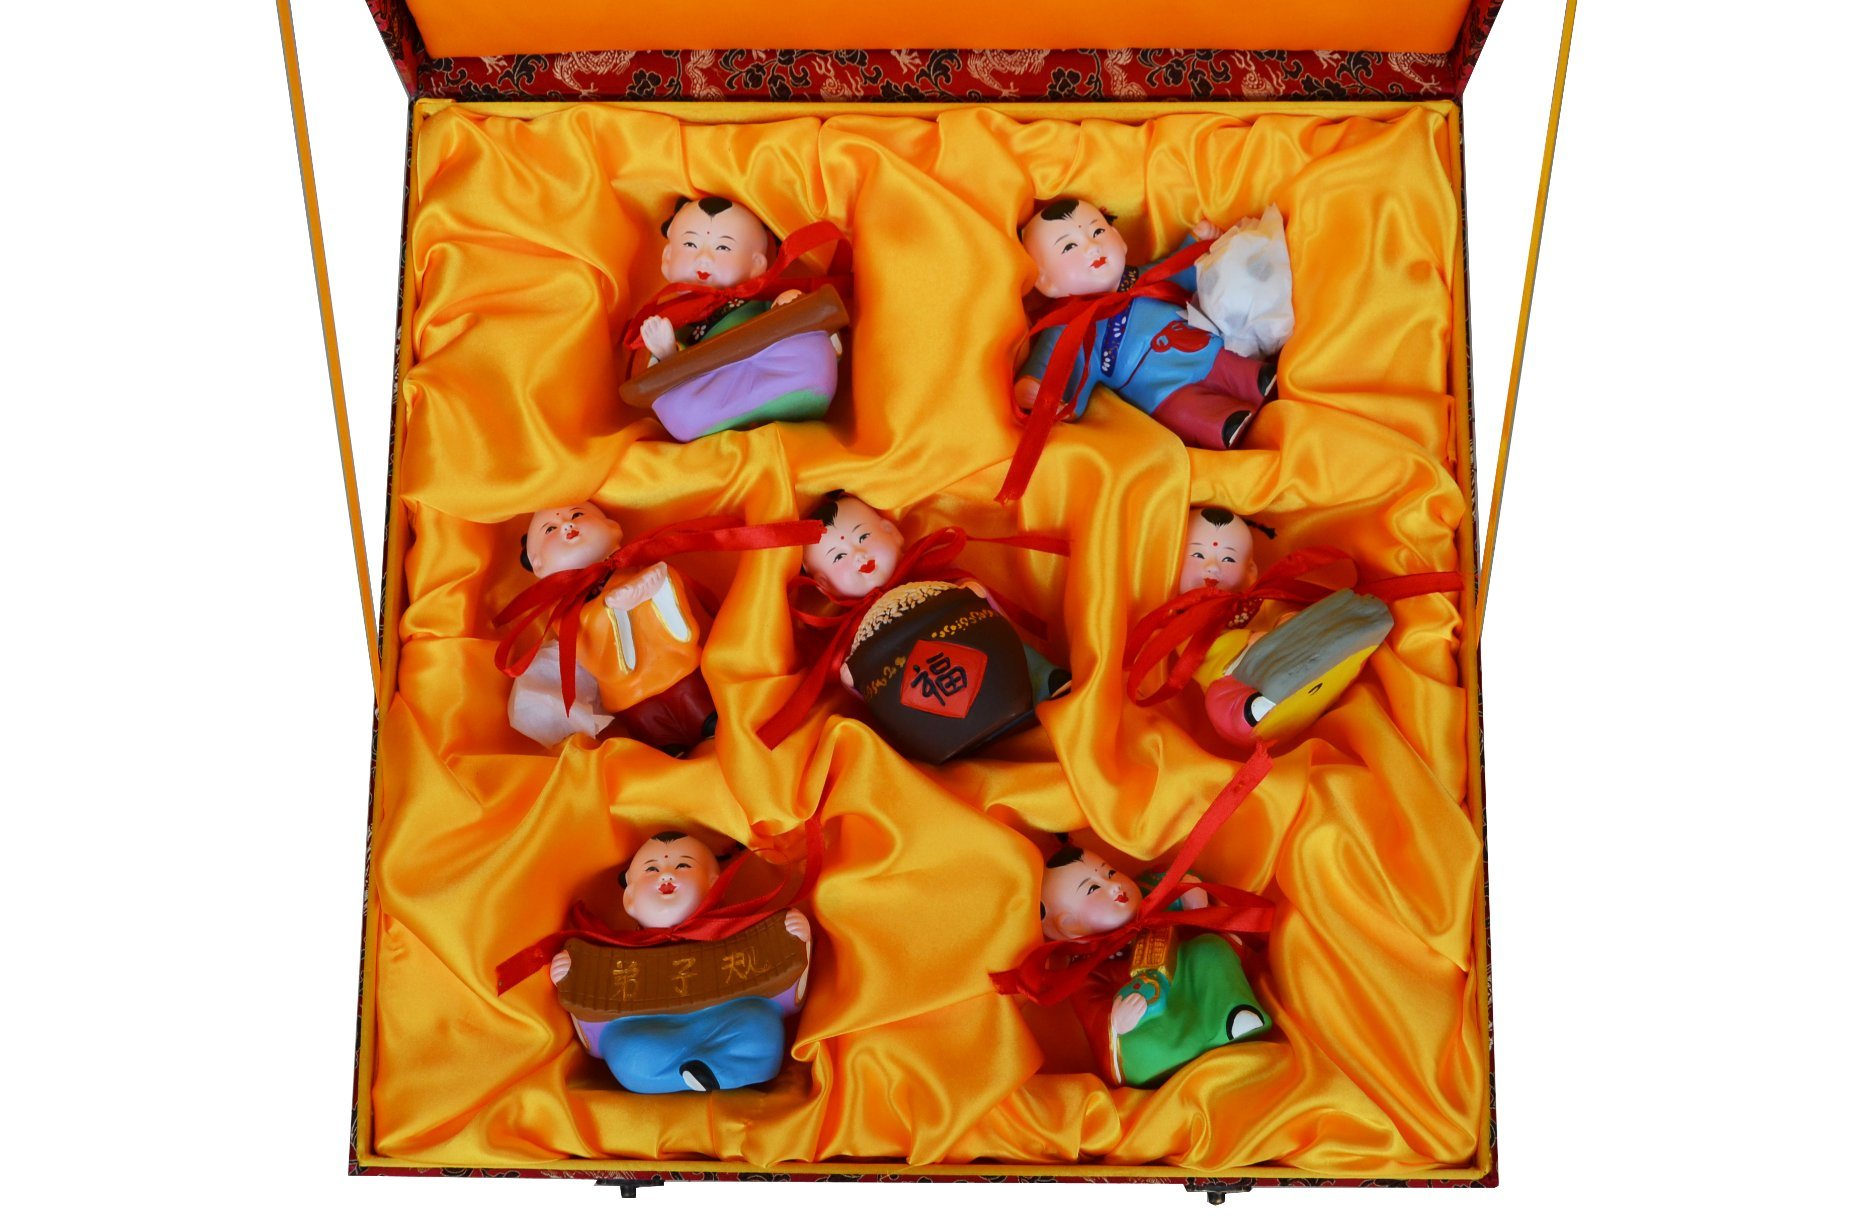 Handicraft, 1 Package of Total 7 Dolls with Chinese Culture